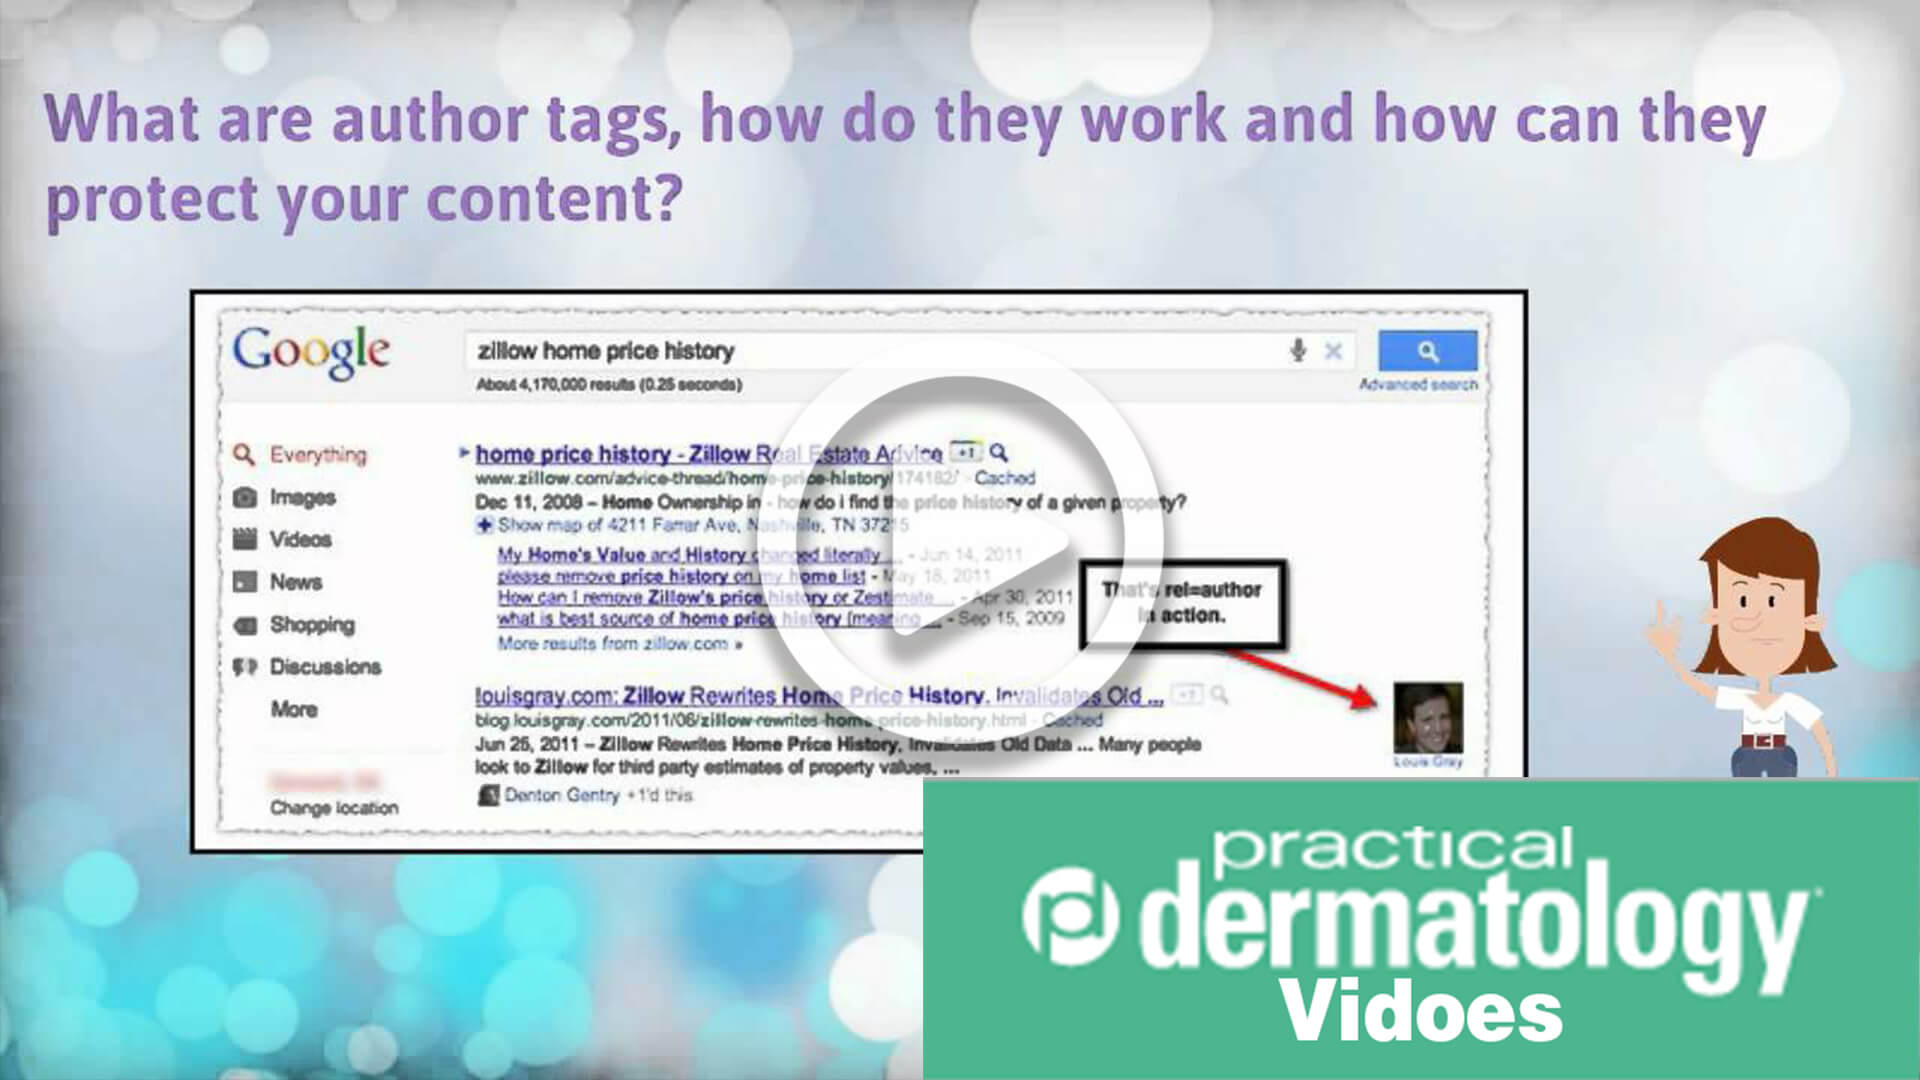 Authority Tags- Protecting your content